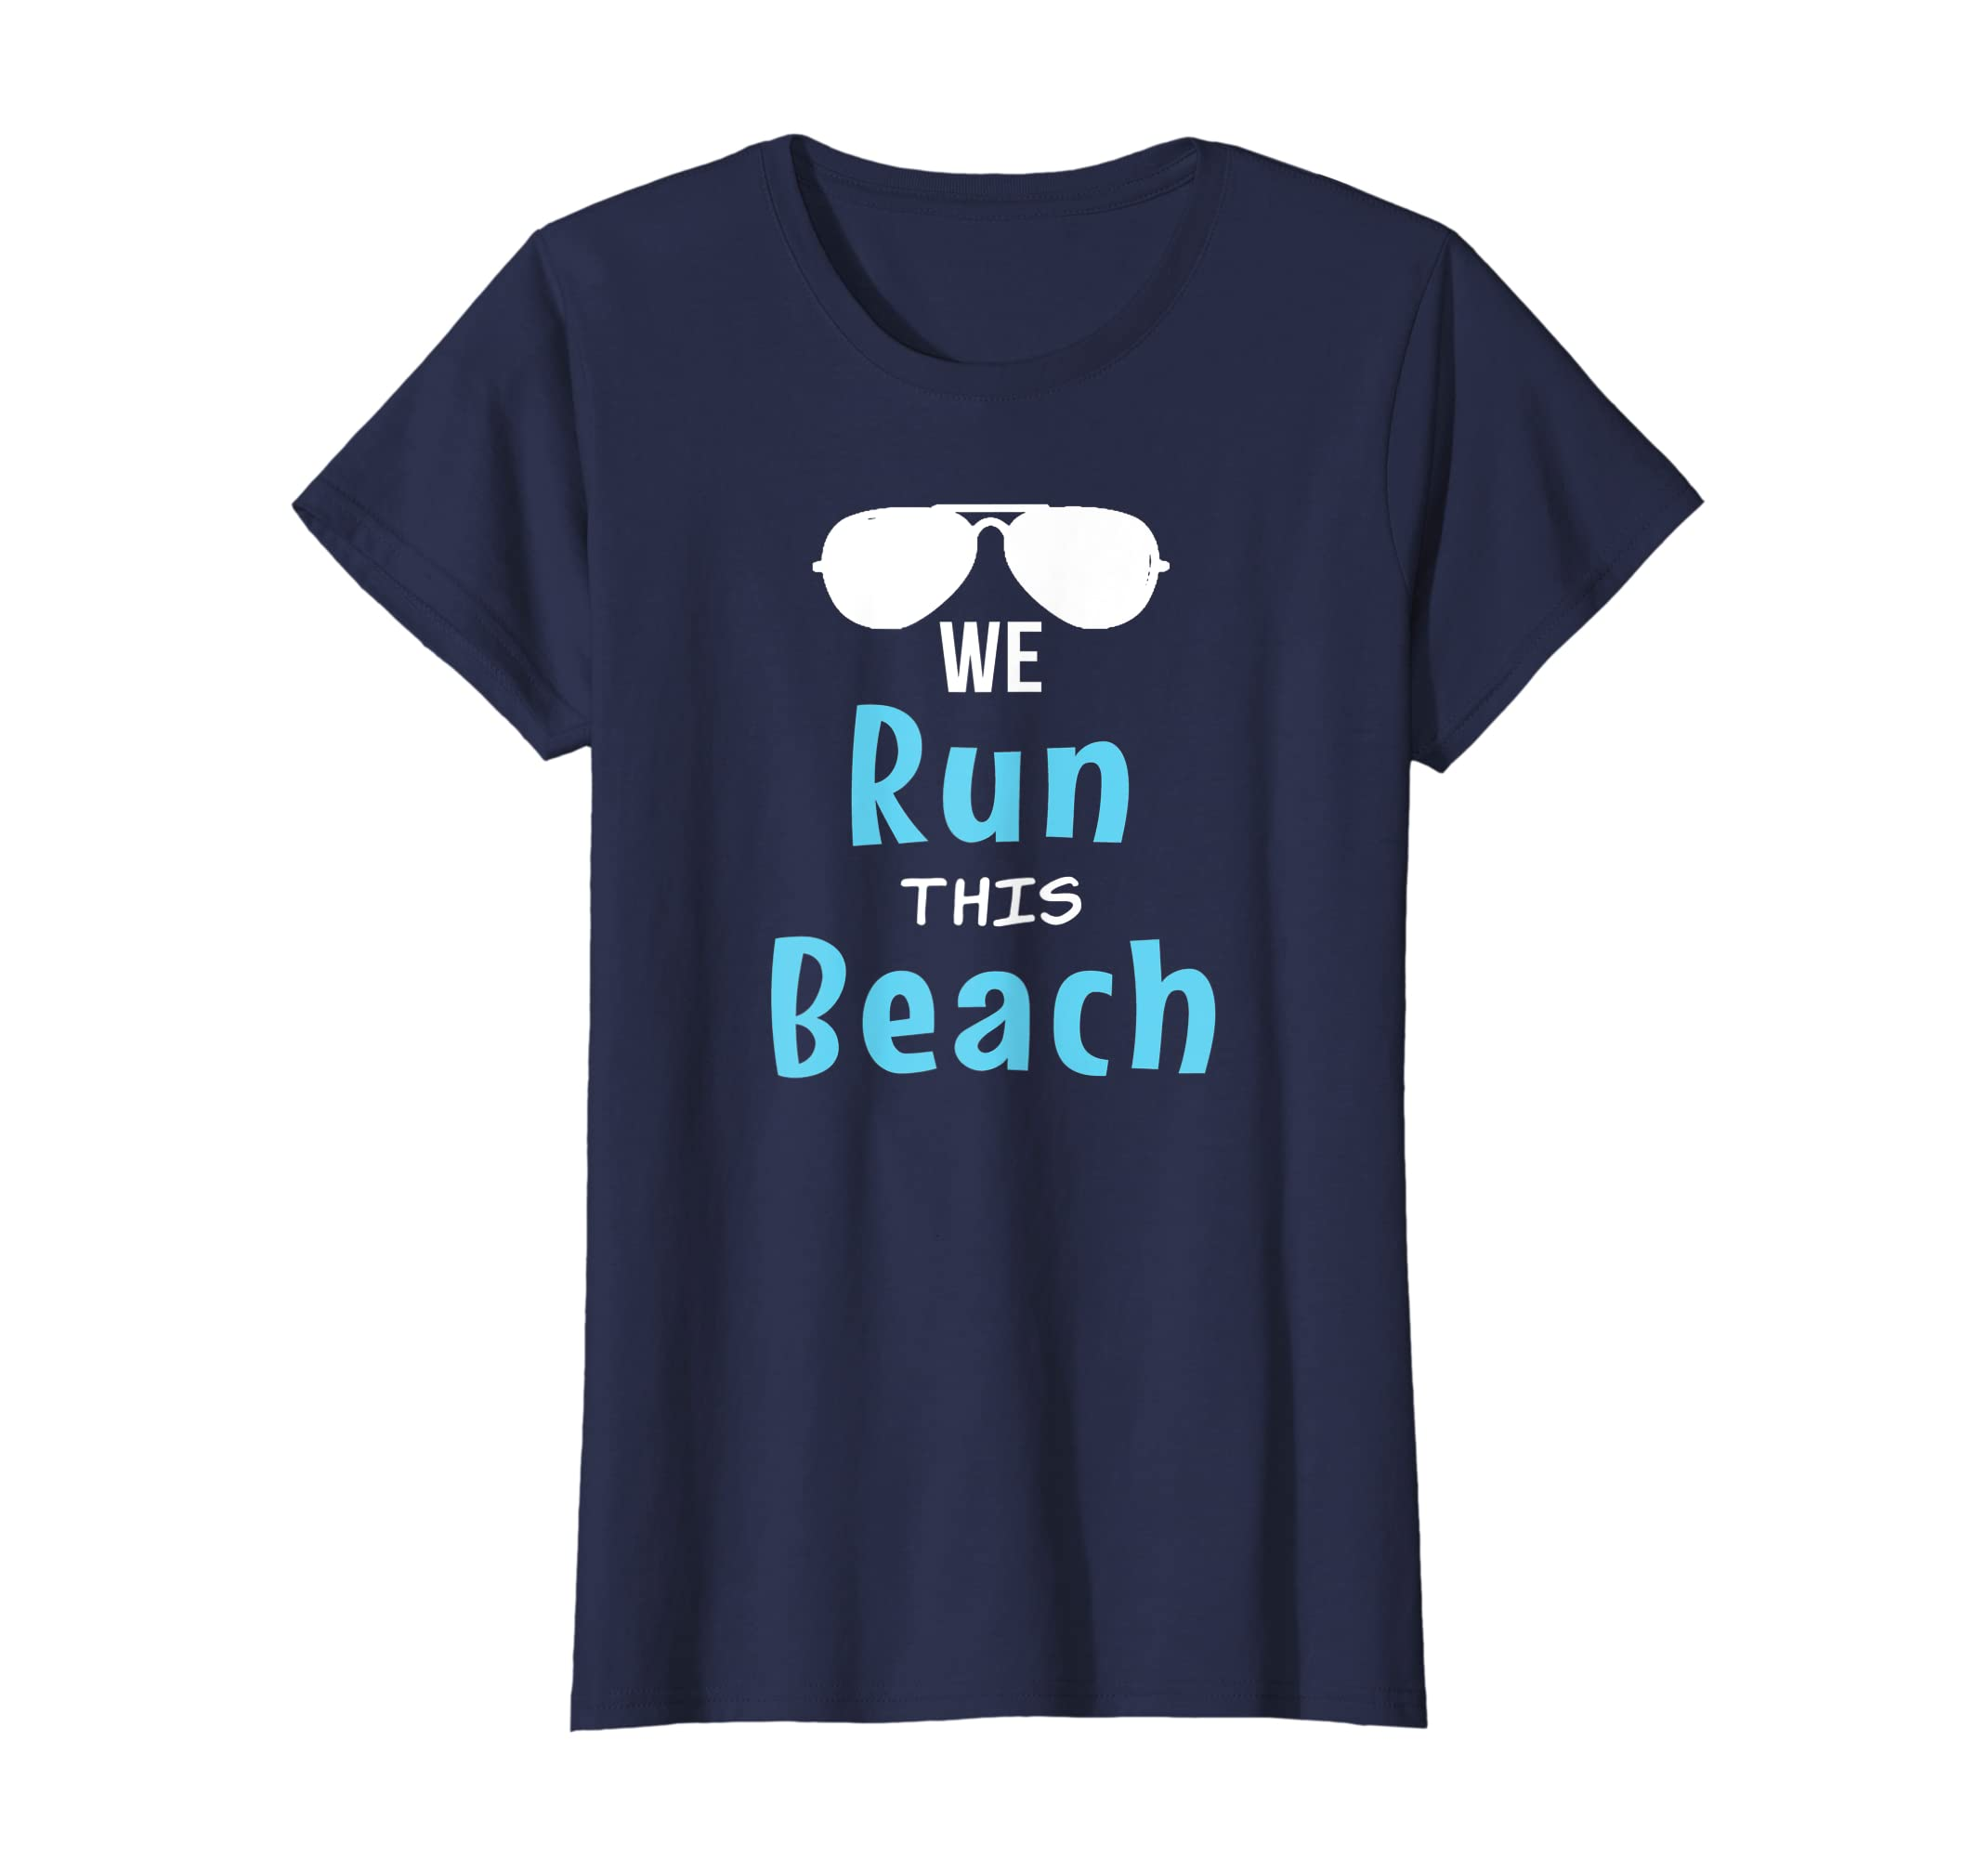 4d4ee4e3d5 Amazon.com: Funny Matching Family Group Tshirt for Beach Vacation Trip:  Clothing